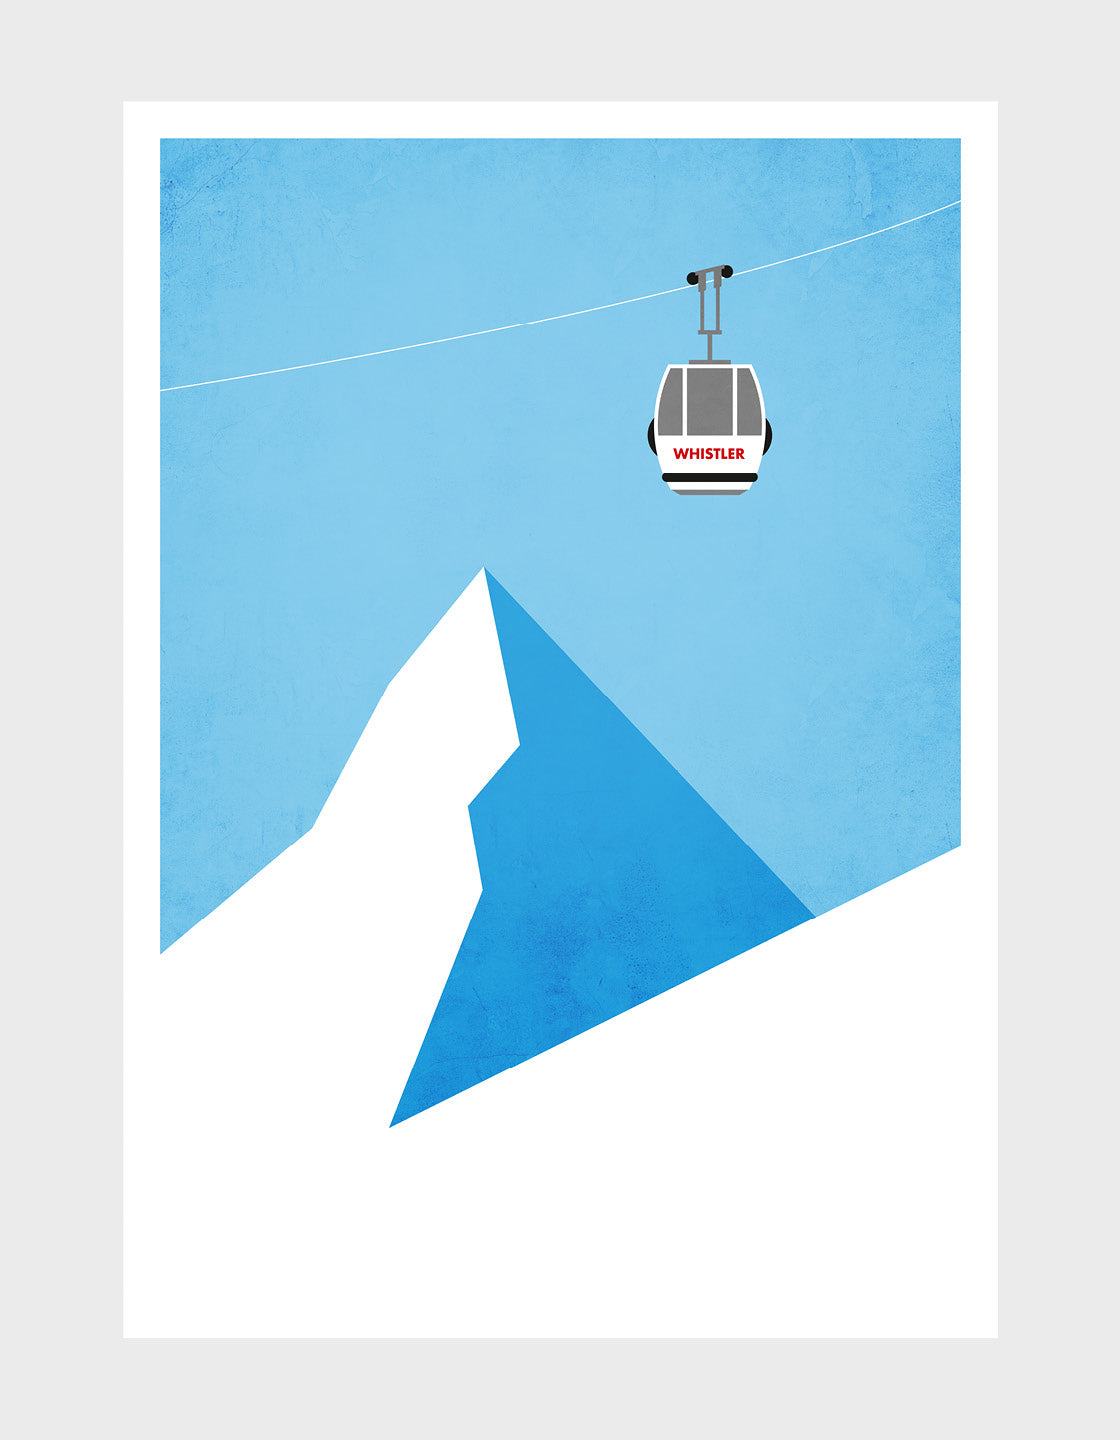 Art print of a ski gondola in a beautiful snowy mountain landscape